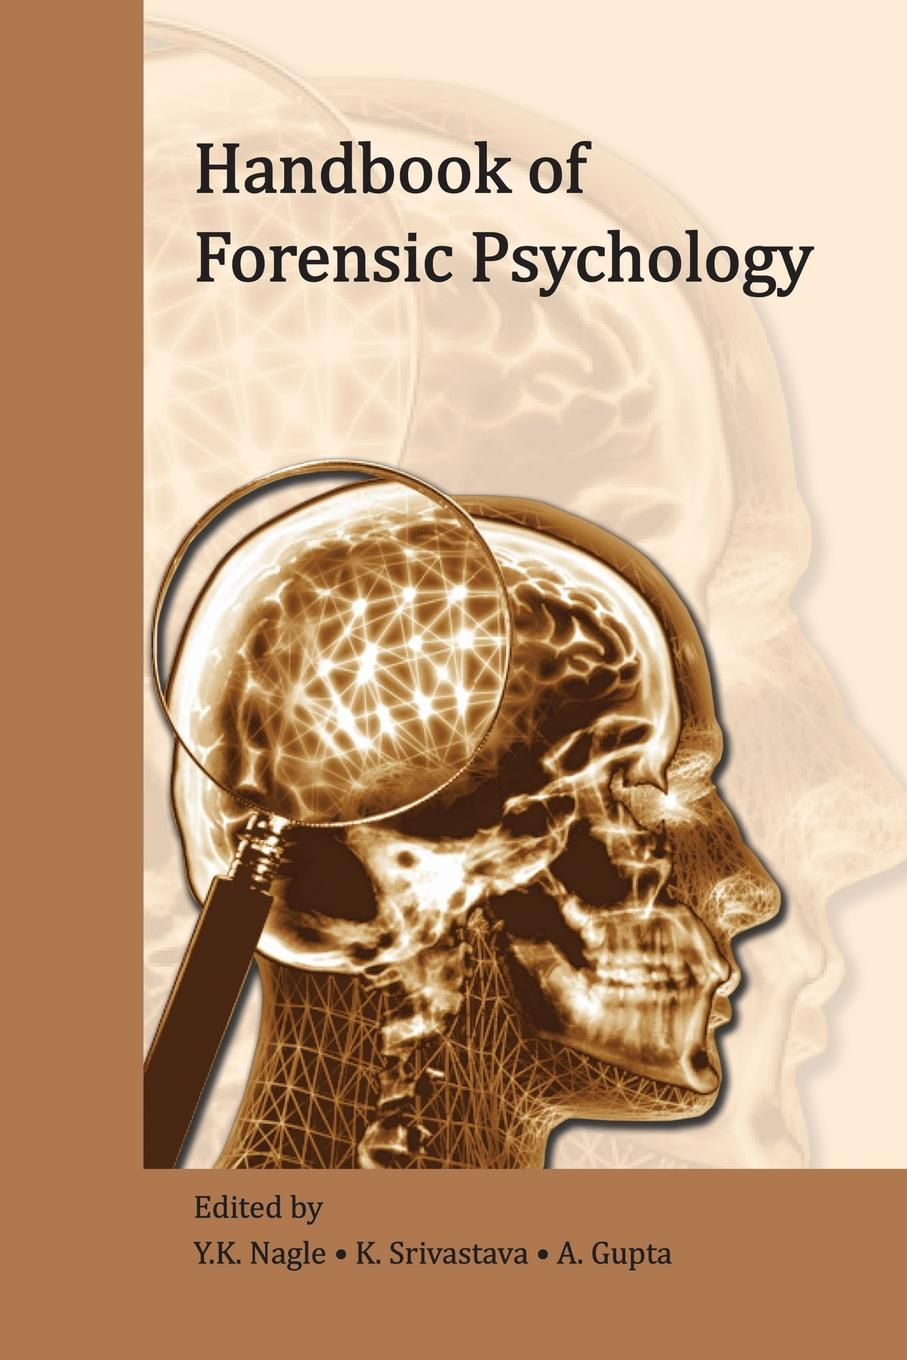 Y. K. Nagle, K. Srivastava, A. Gupta Handbook of Forensic Psychology strack ph d stephen handbook of interpersonal psychology theory research assessment and therapeutic interventions